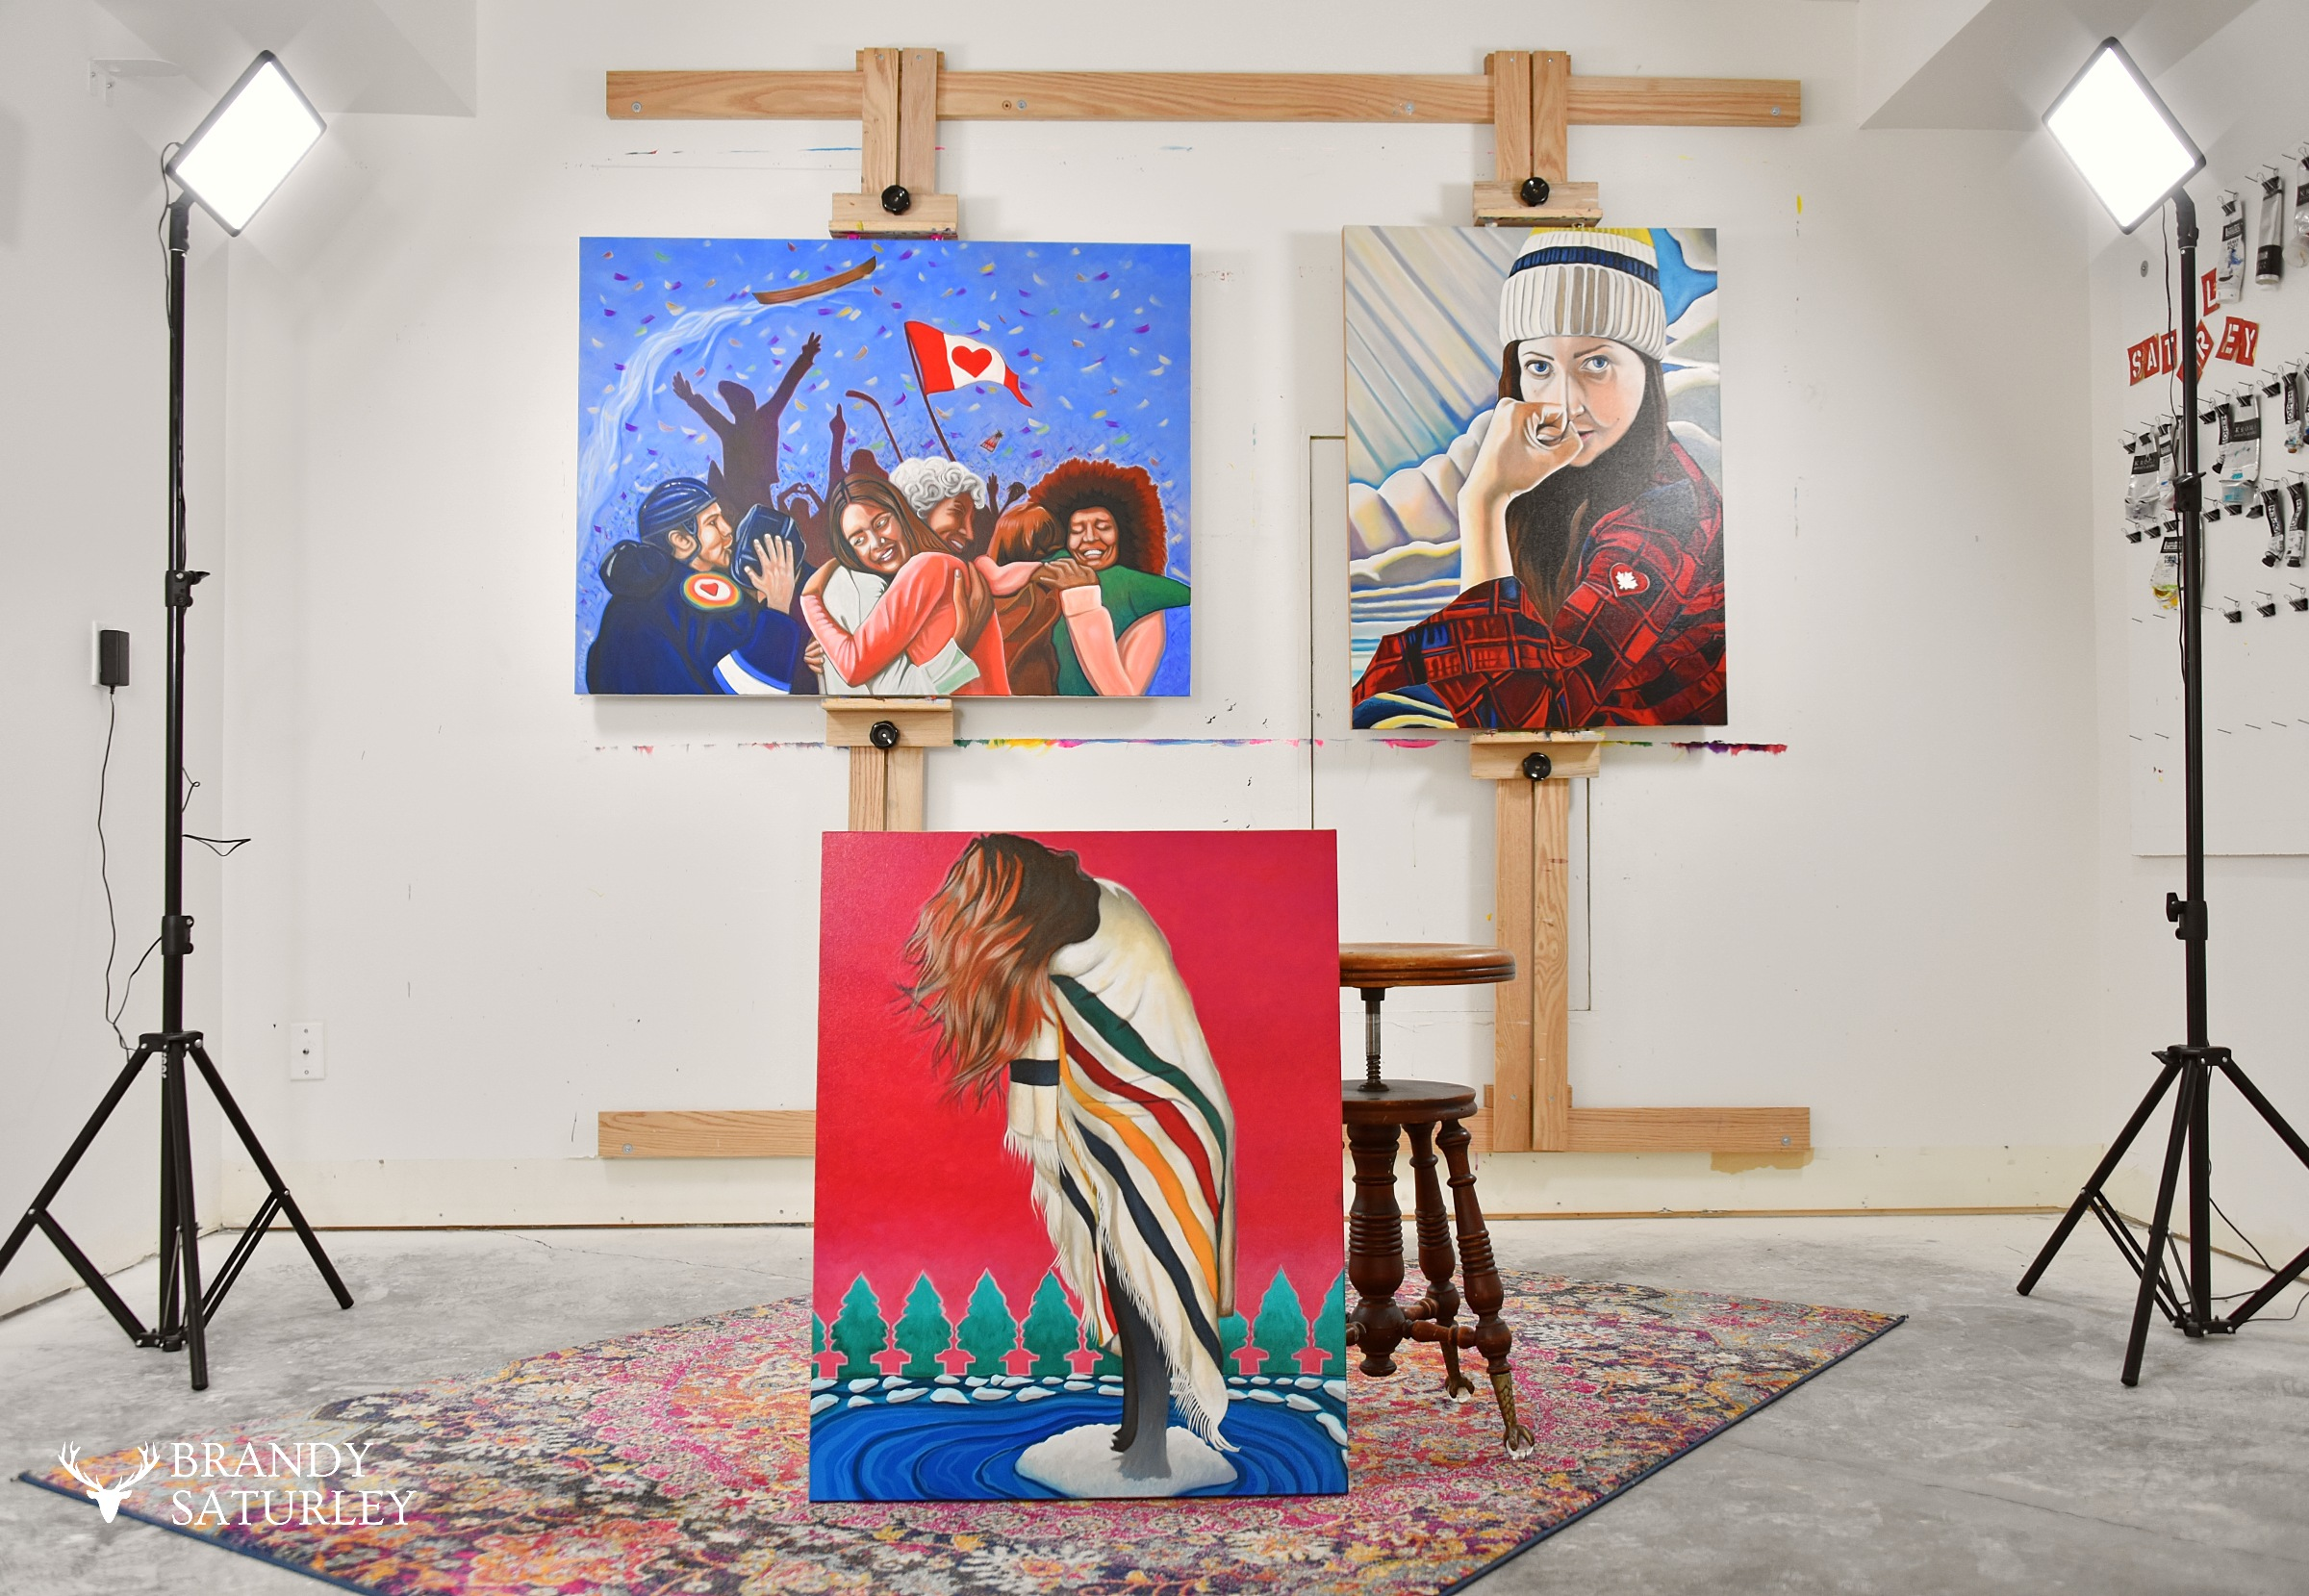 Canadian Pop Art and Artist Brandy Saturley studio in Victoria BC